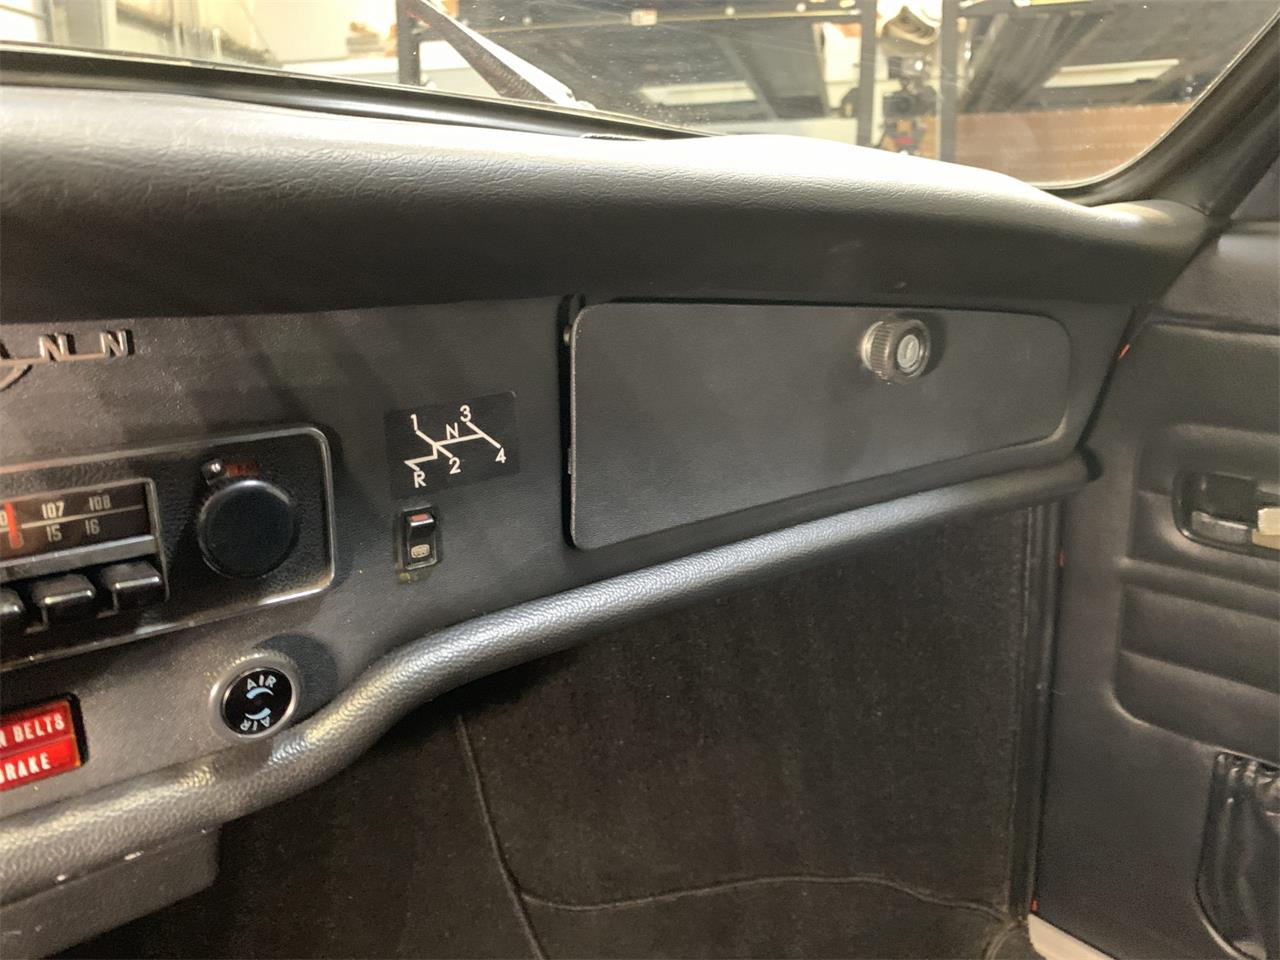 1974 Volkswagen Karmann Ghia for sale in Pittsburgh, PA – photo 43